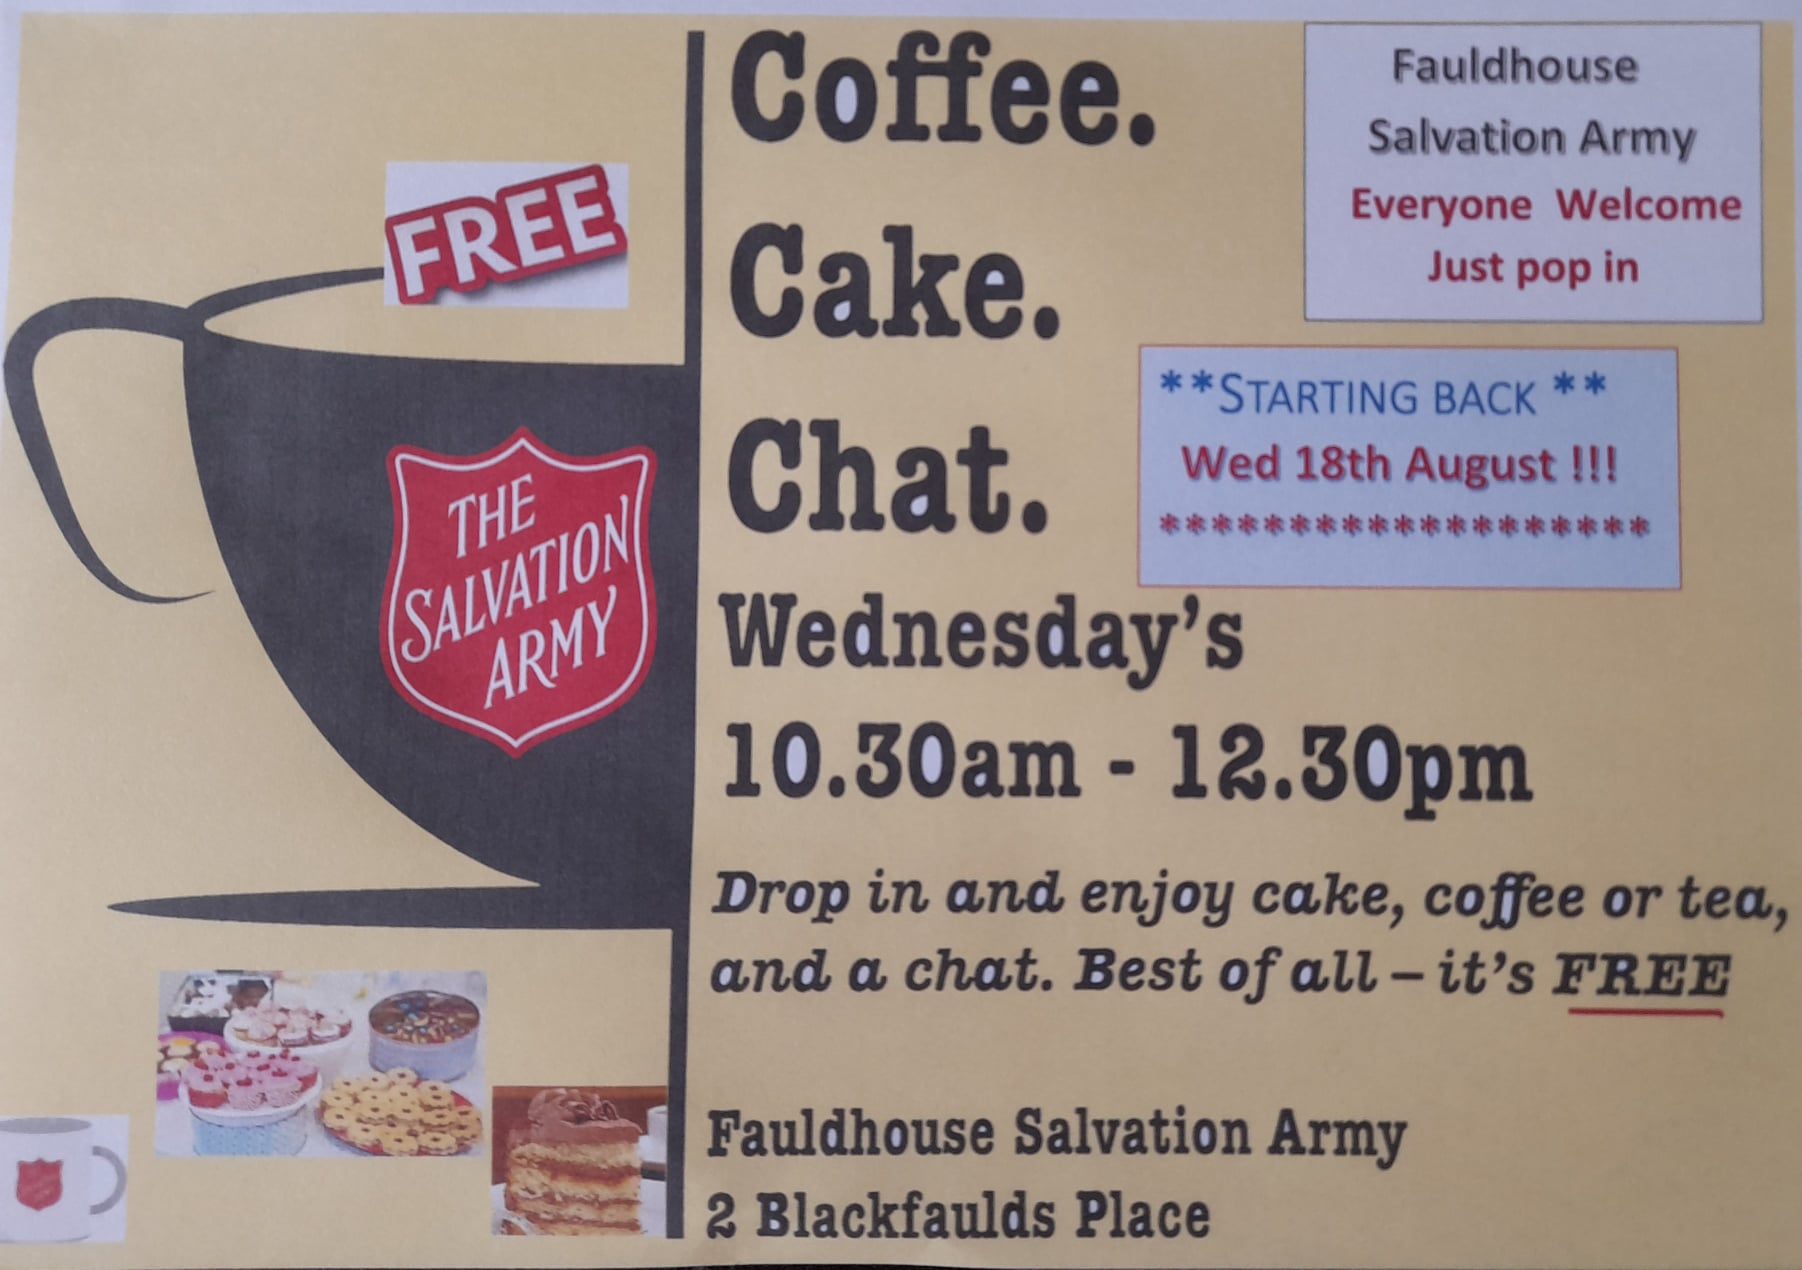 Coffee, Cake, Chat @ Salvation Army Fauldhouse